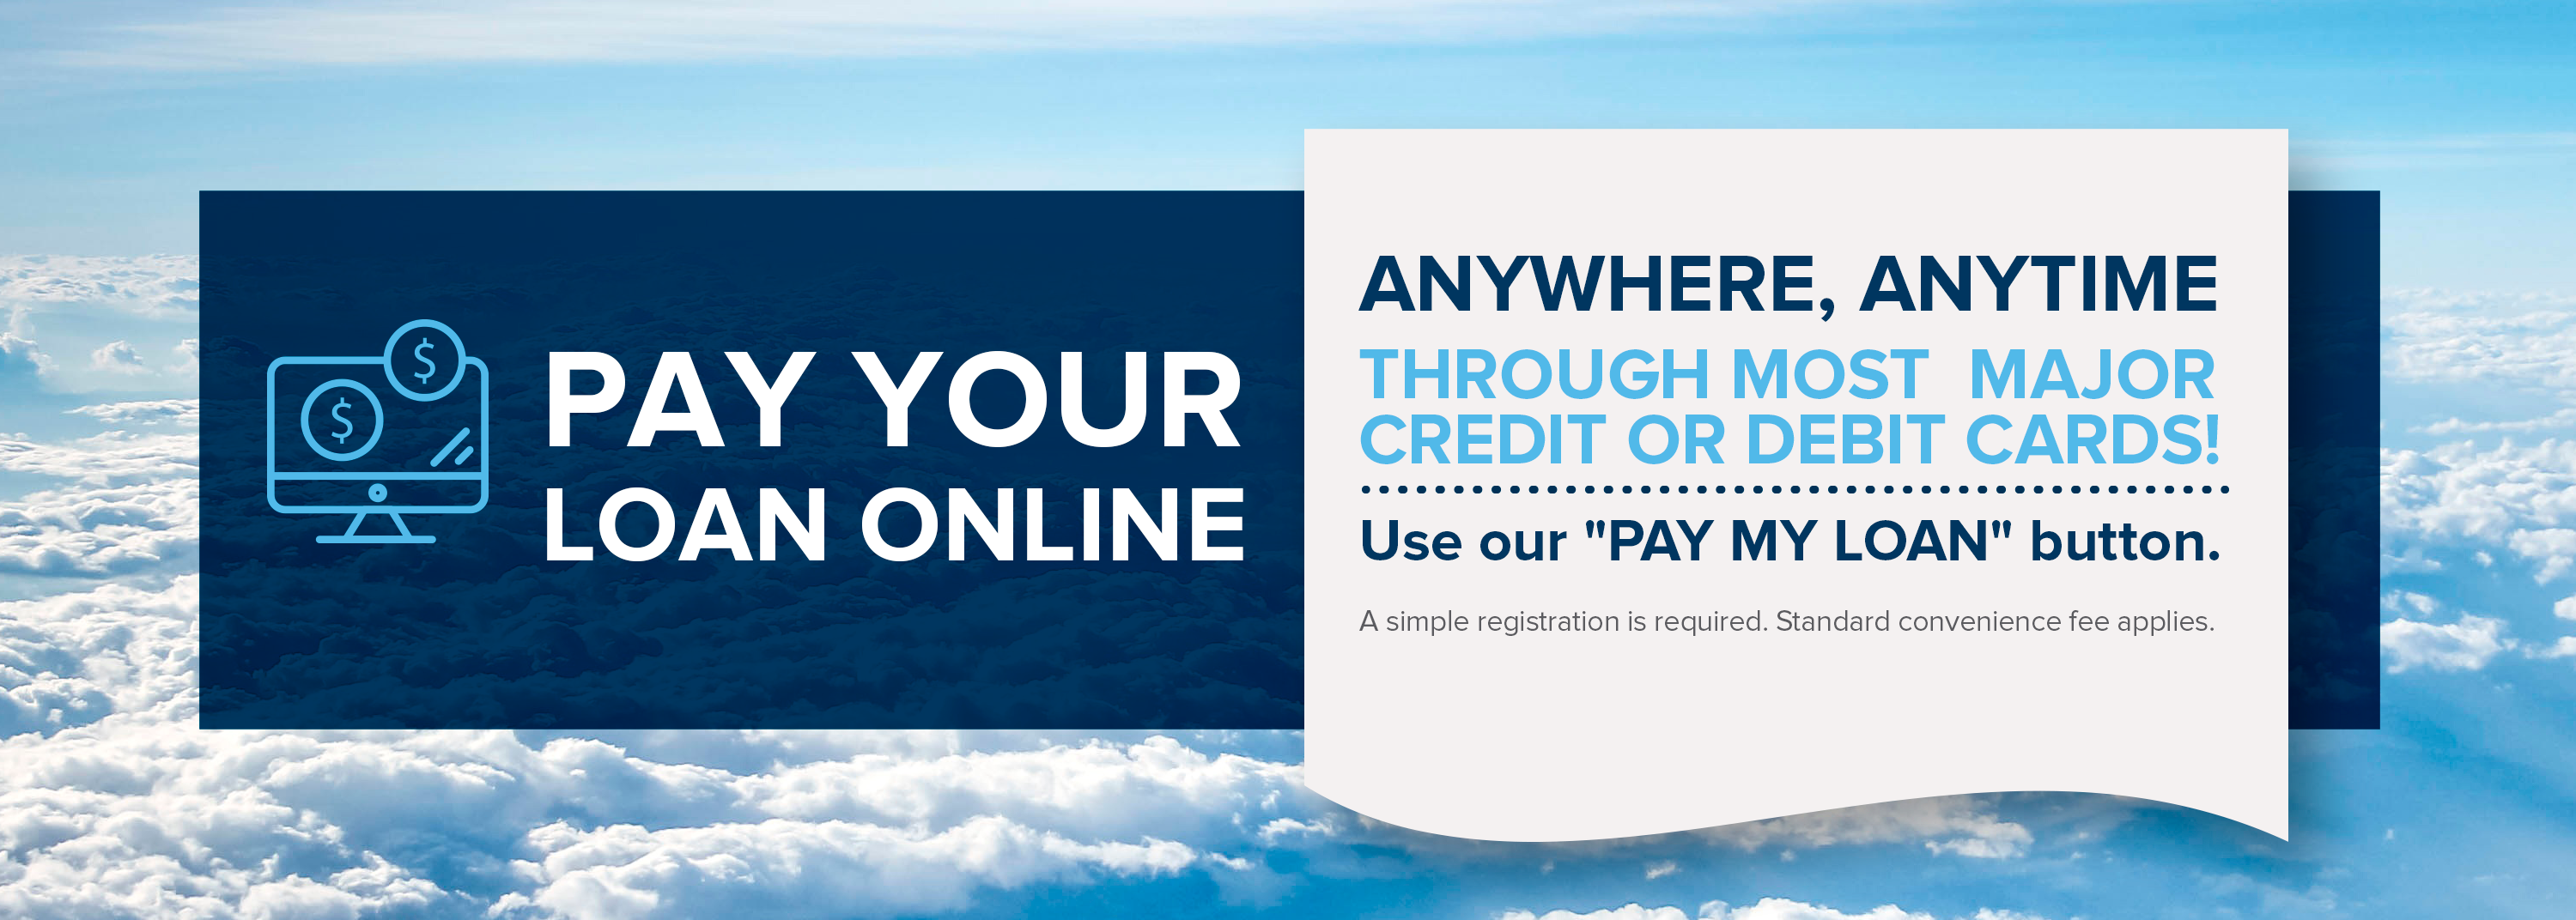 OnlinePayment_WebBanner Home